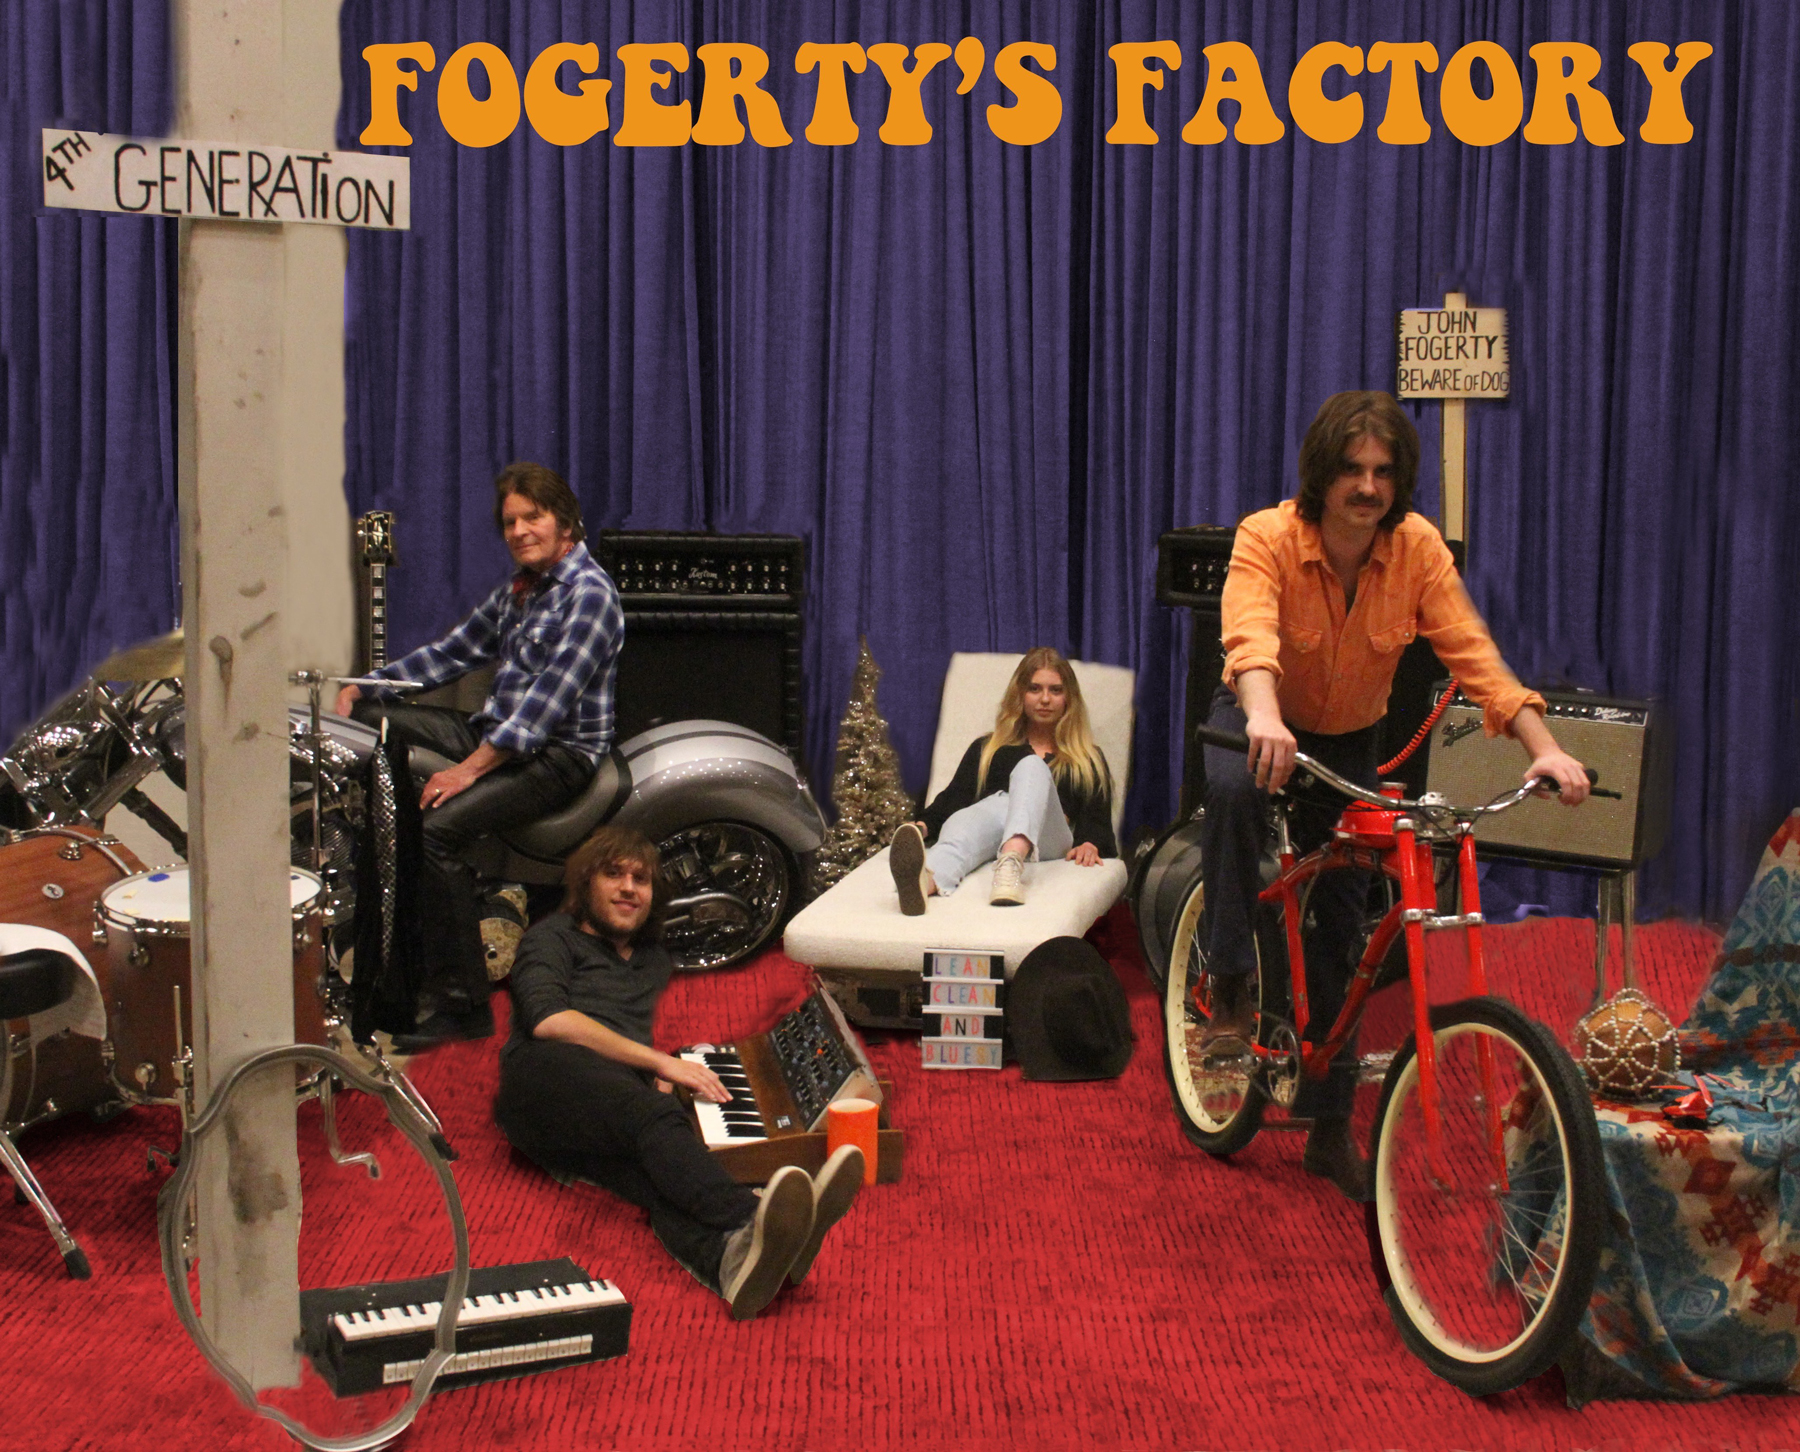 John Fogerty and Family Drop 'Fogerty's Factory' EP